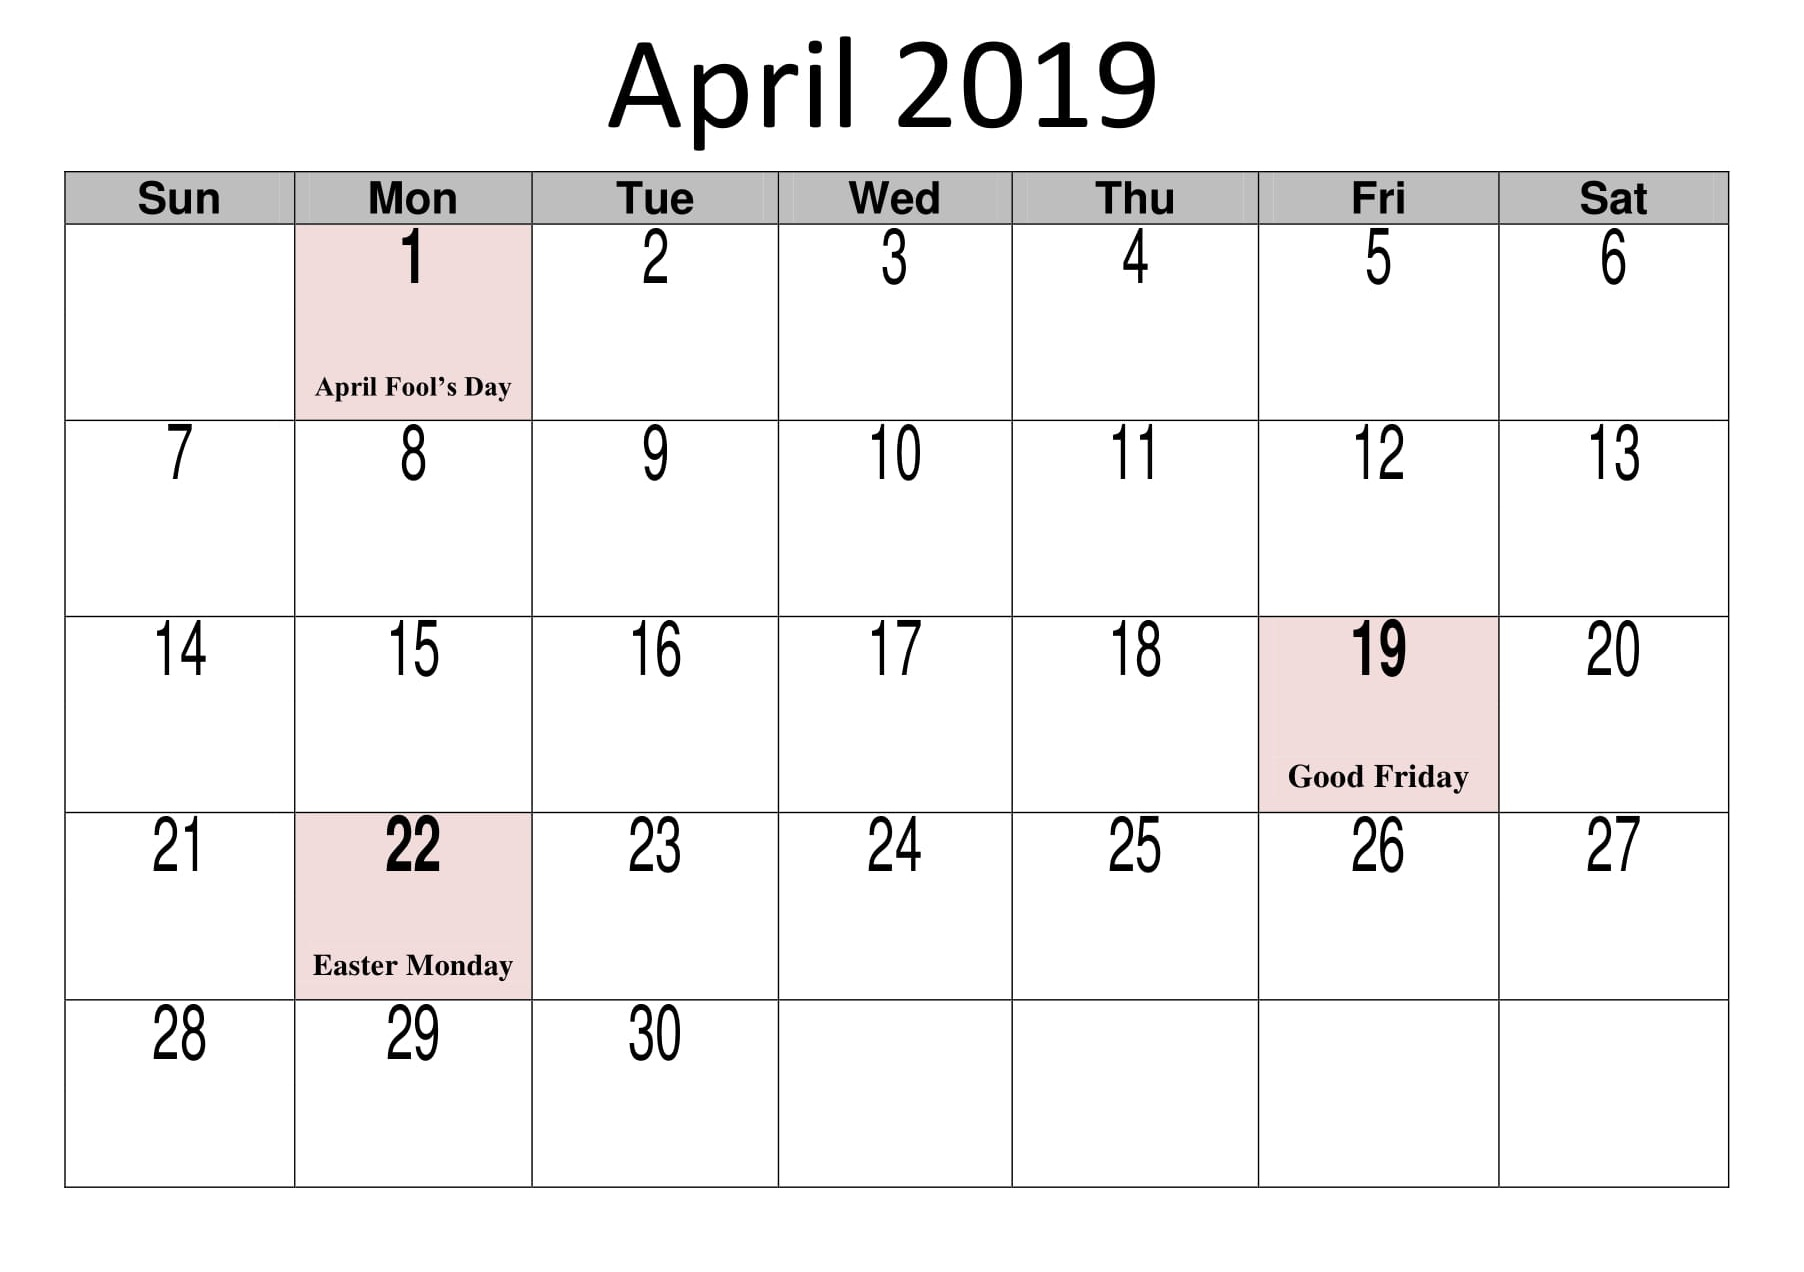 April 2019 Calendar With Holidays Template Free Printable Calendar